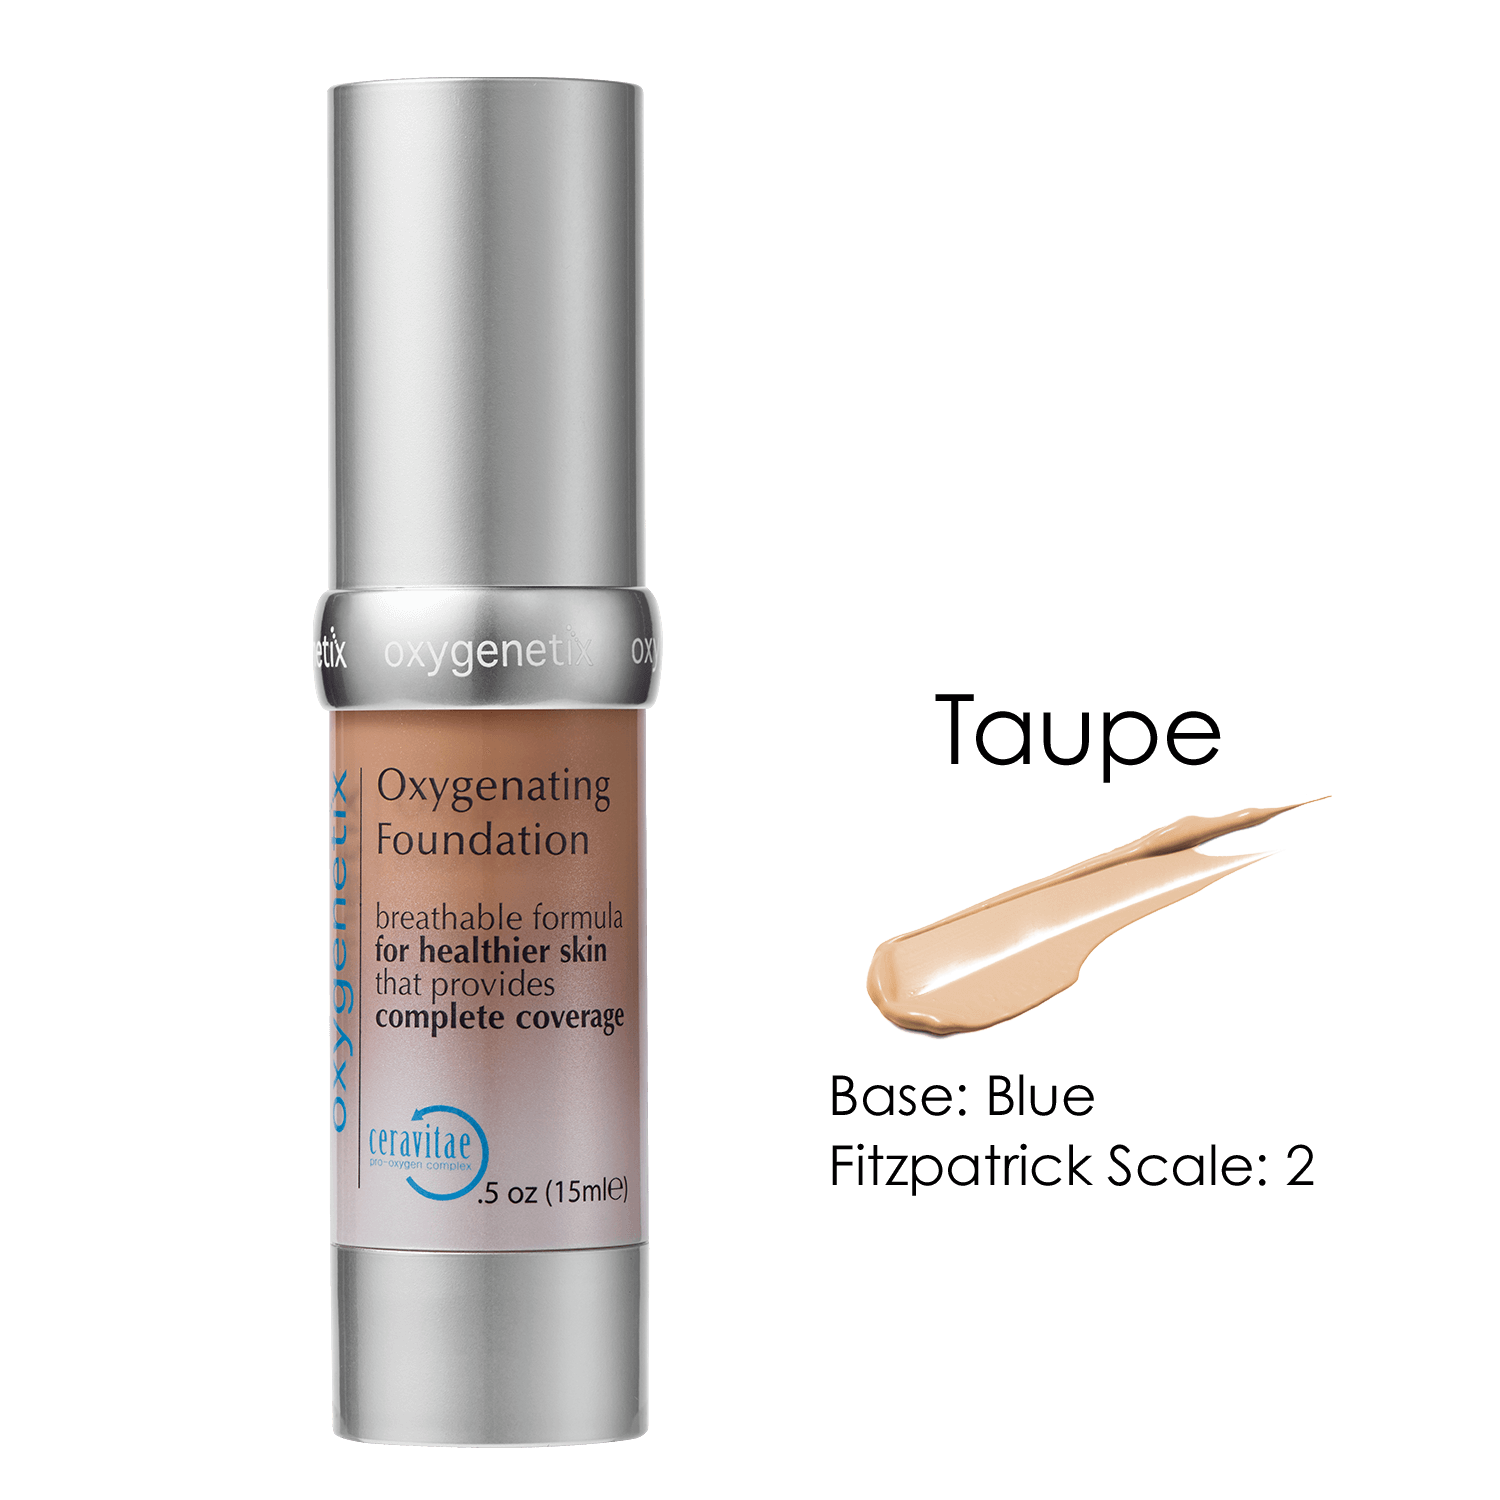 Oxygenetix Oxygenating Foundation - SPF 30